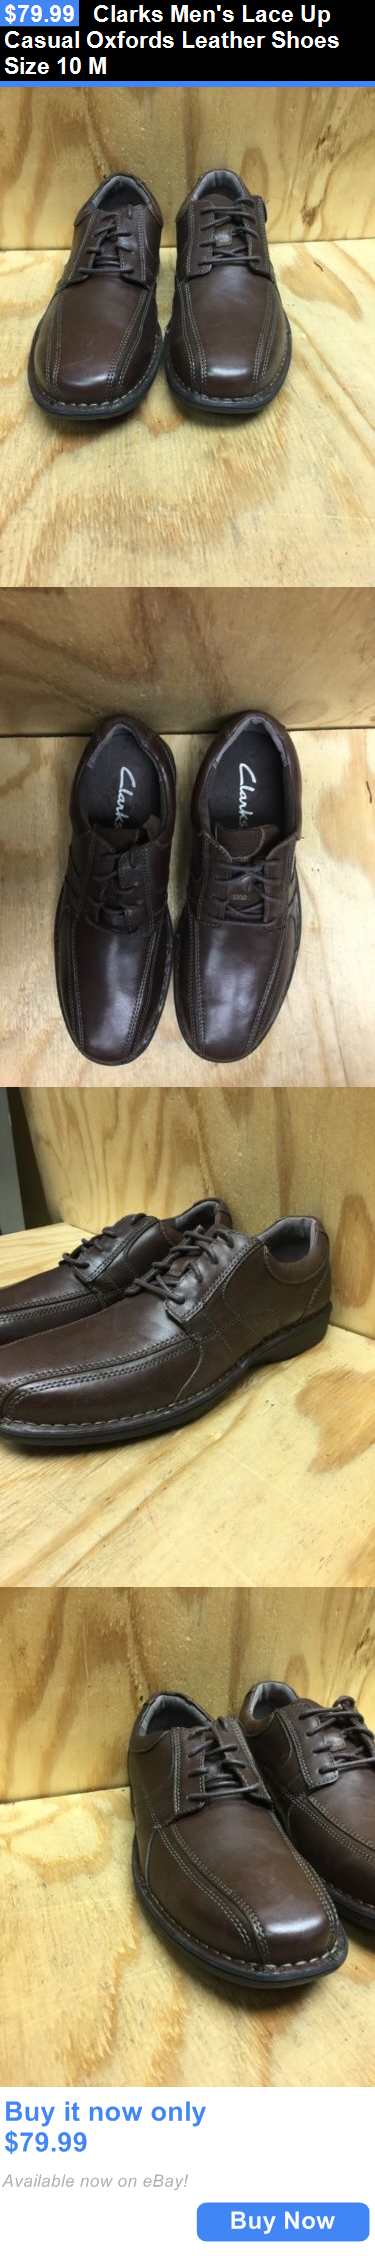 clothing and accessories: Clarks Mens Lace Up Casual Oxfords Leather Shoes Size 10 M BUY IT NOW ONLY: $79.99